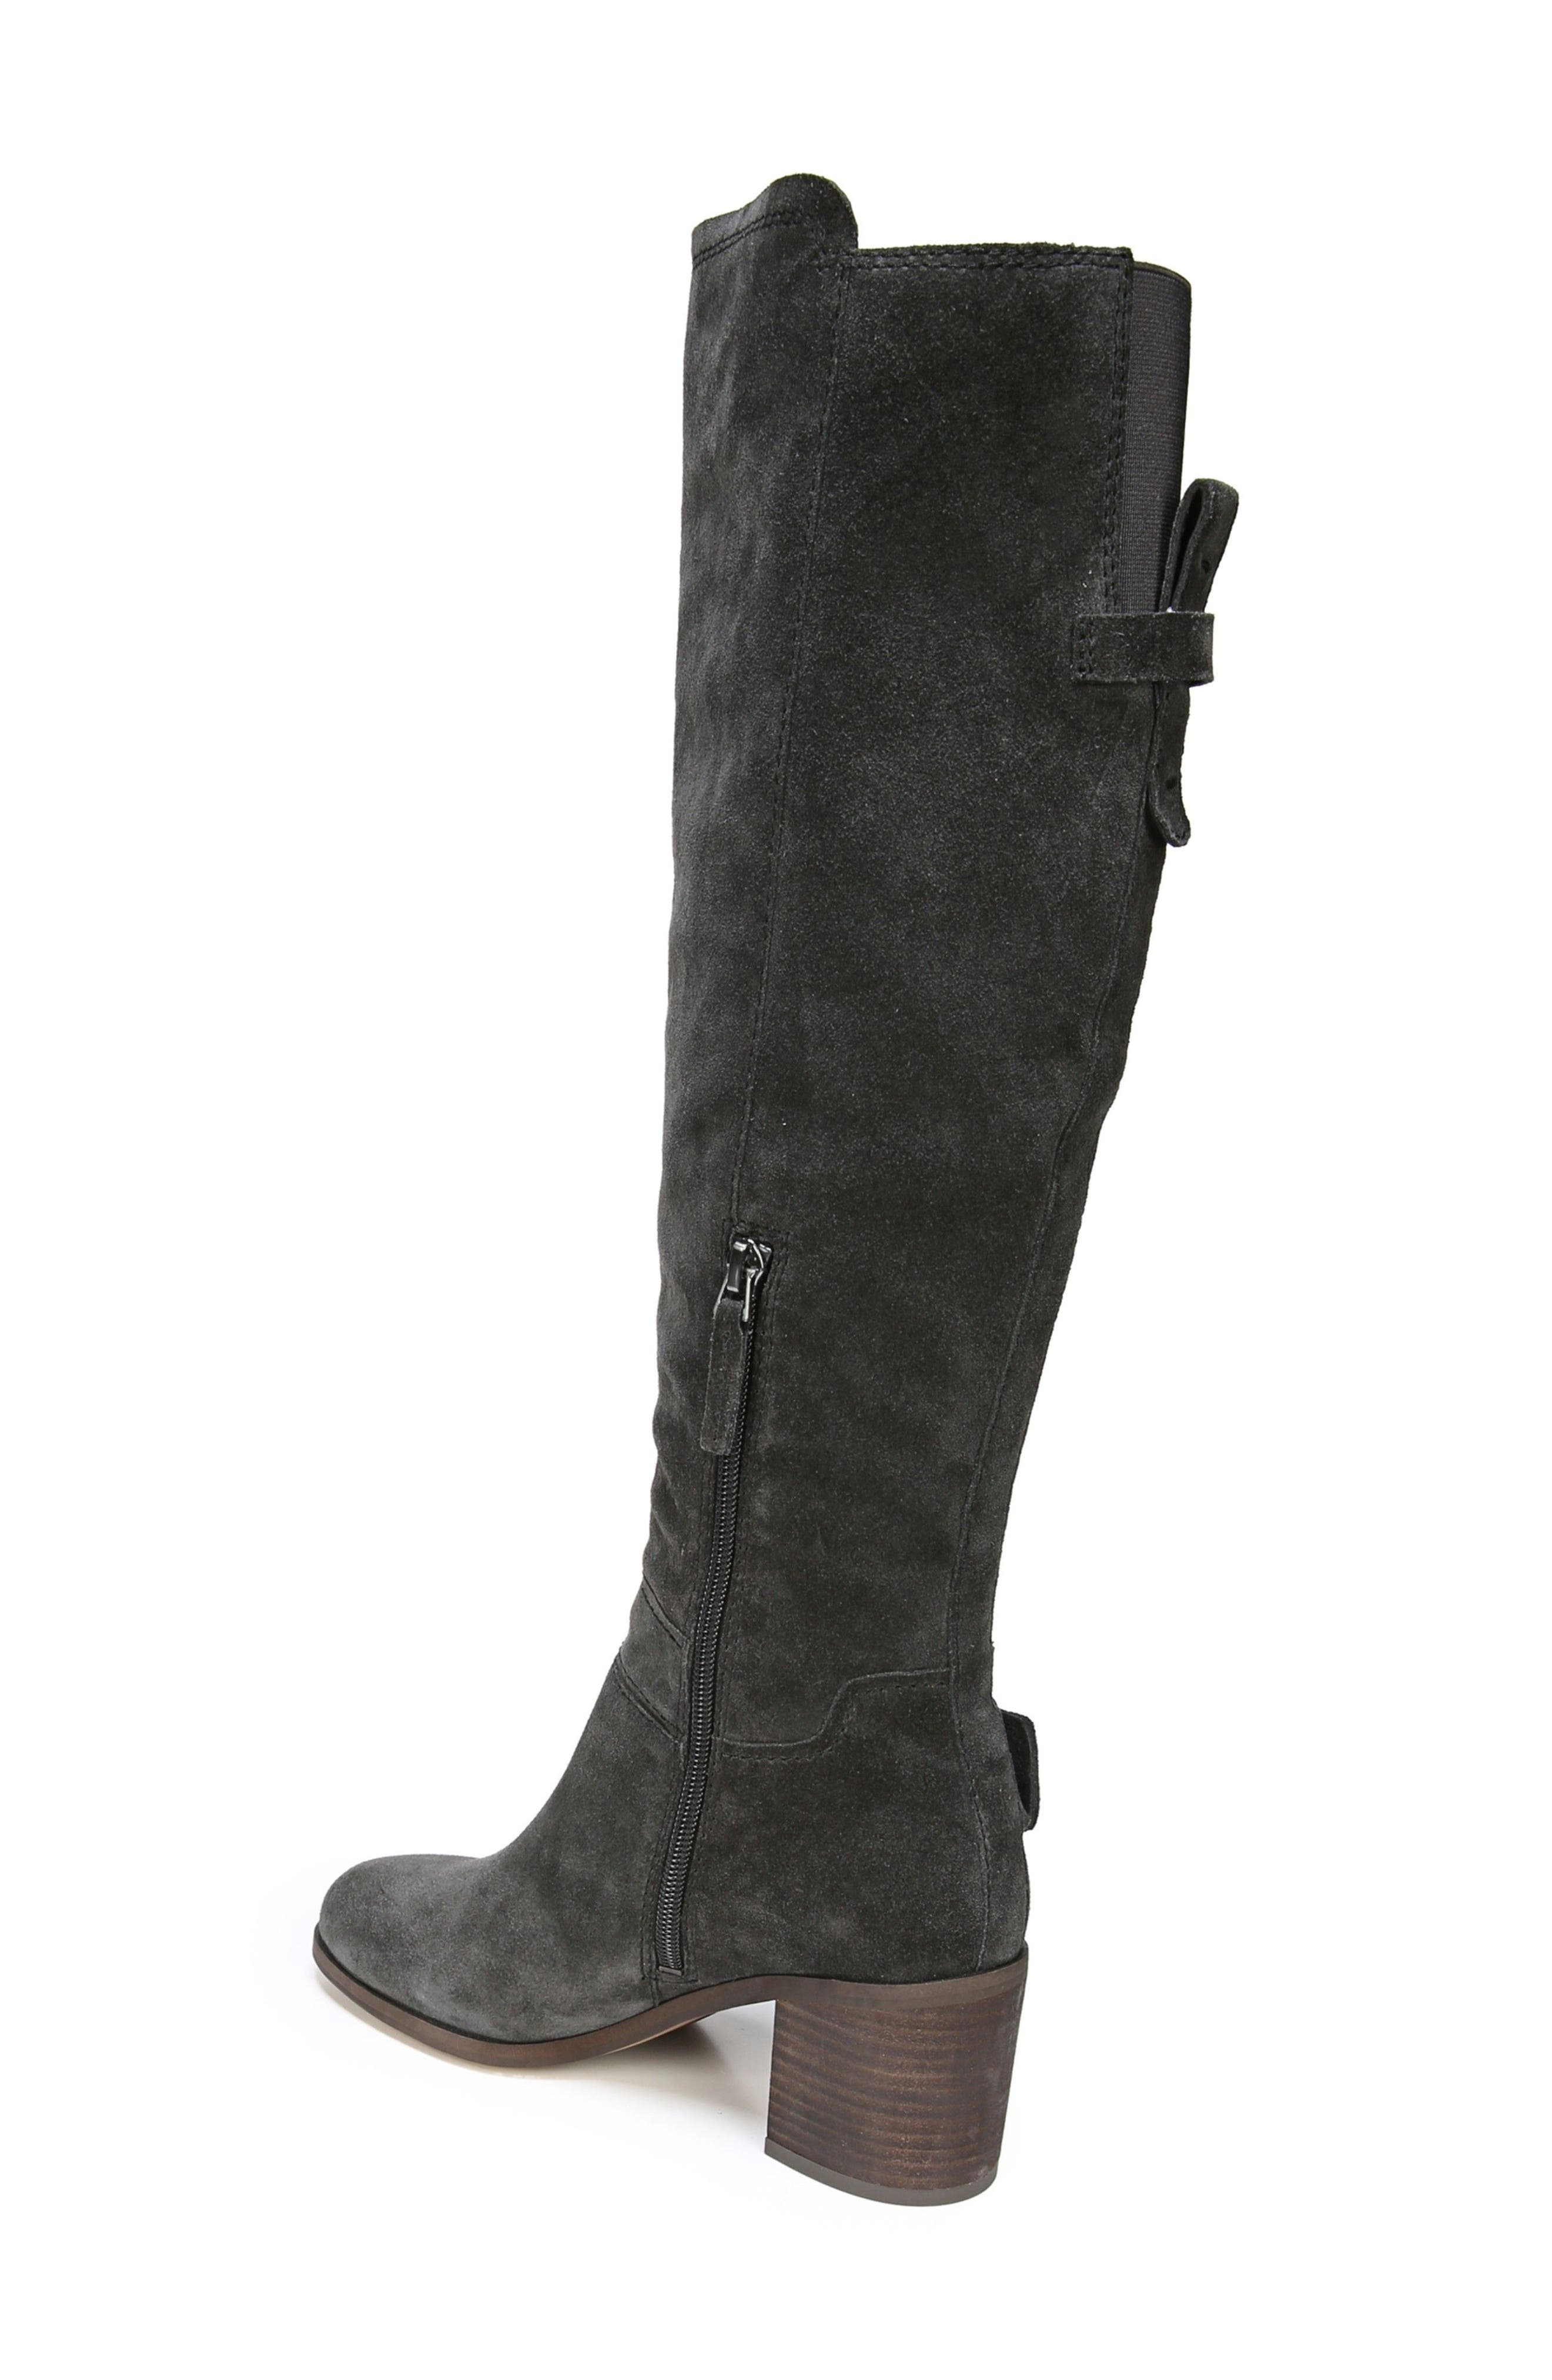 Mystic Knee High Boot,                             Alternate thumbnail 2, color,                             Coal Suede